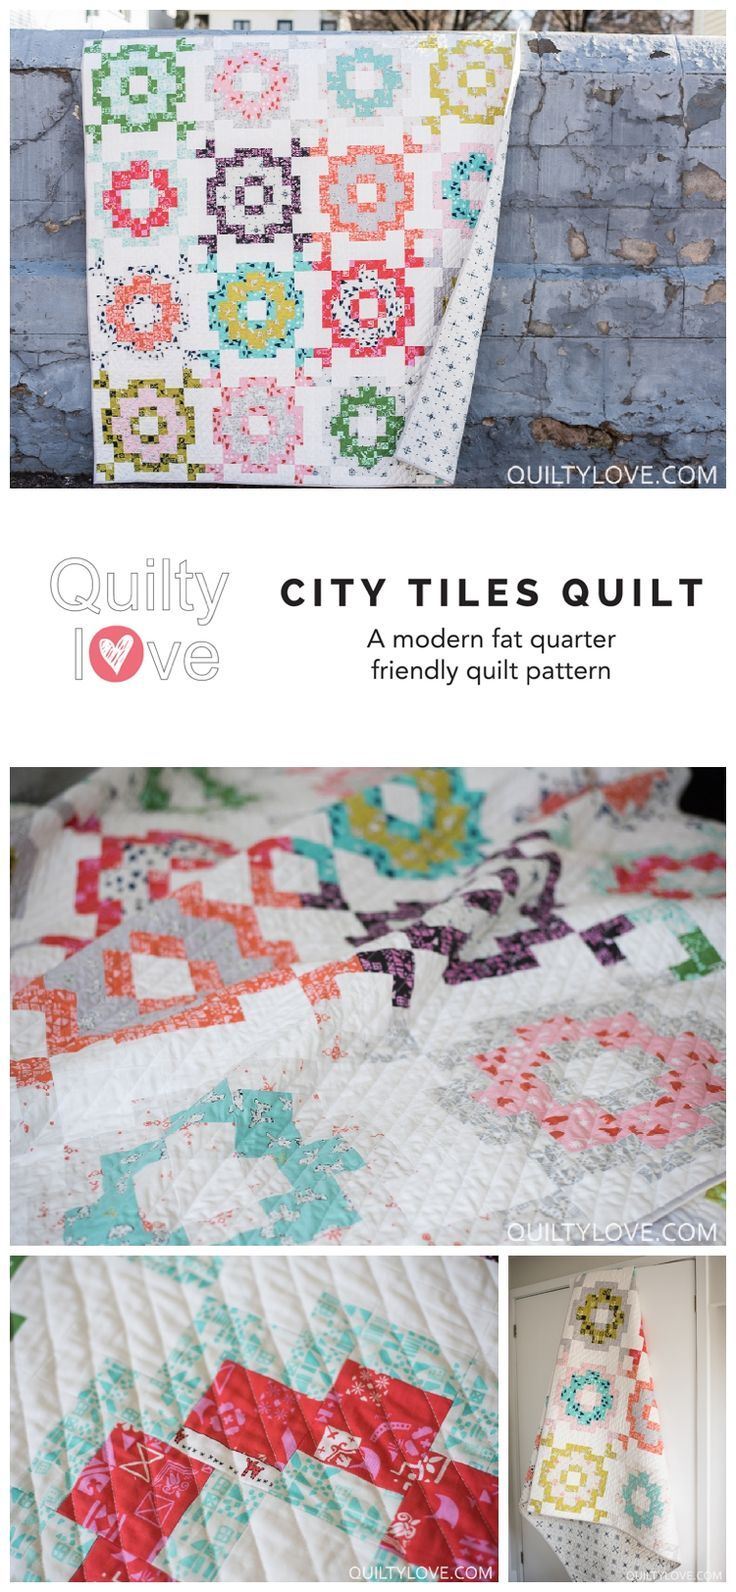 City Tiles quilt pattern by Emily of quiltylove.com.  Modern quilt pattern using Cotton and Steel fabrics.